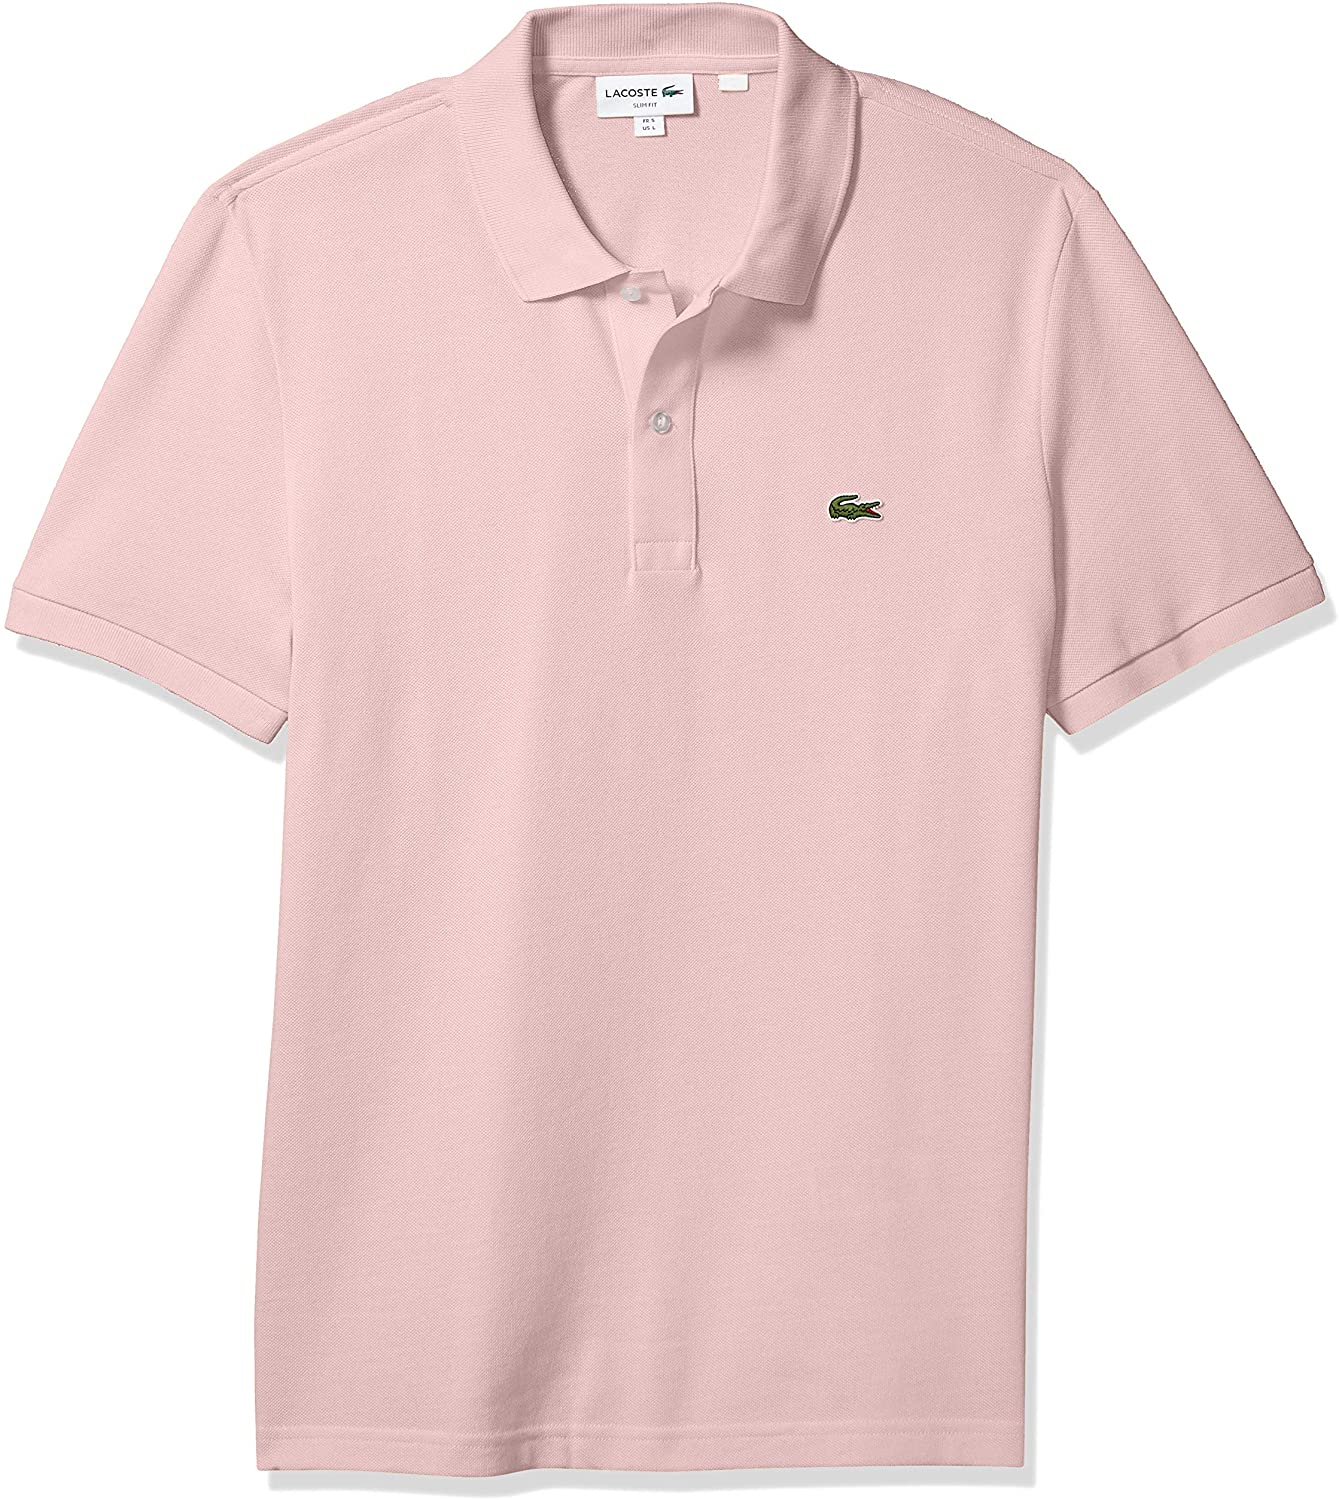 shipfree Lacoste Men's Classic Pique Slim Sleeve Fit Popular shop is the lowest price challenge Polo Short Shirt